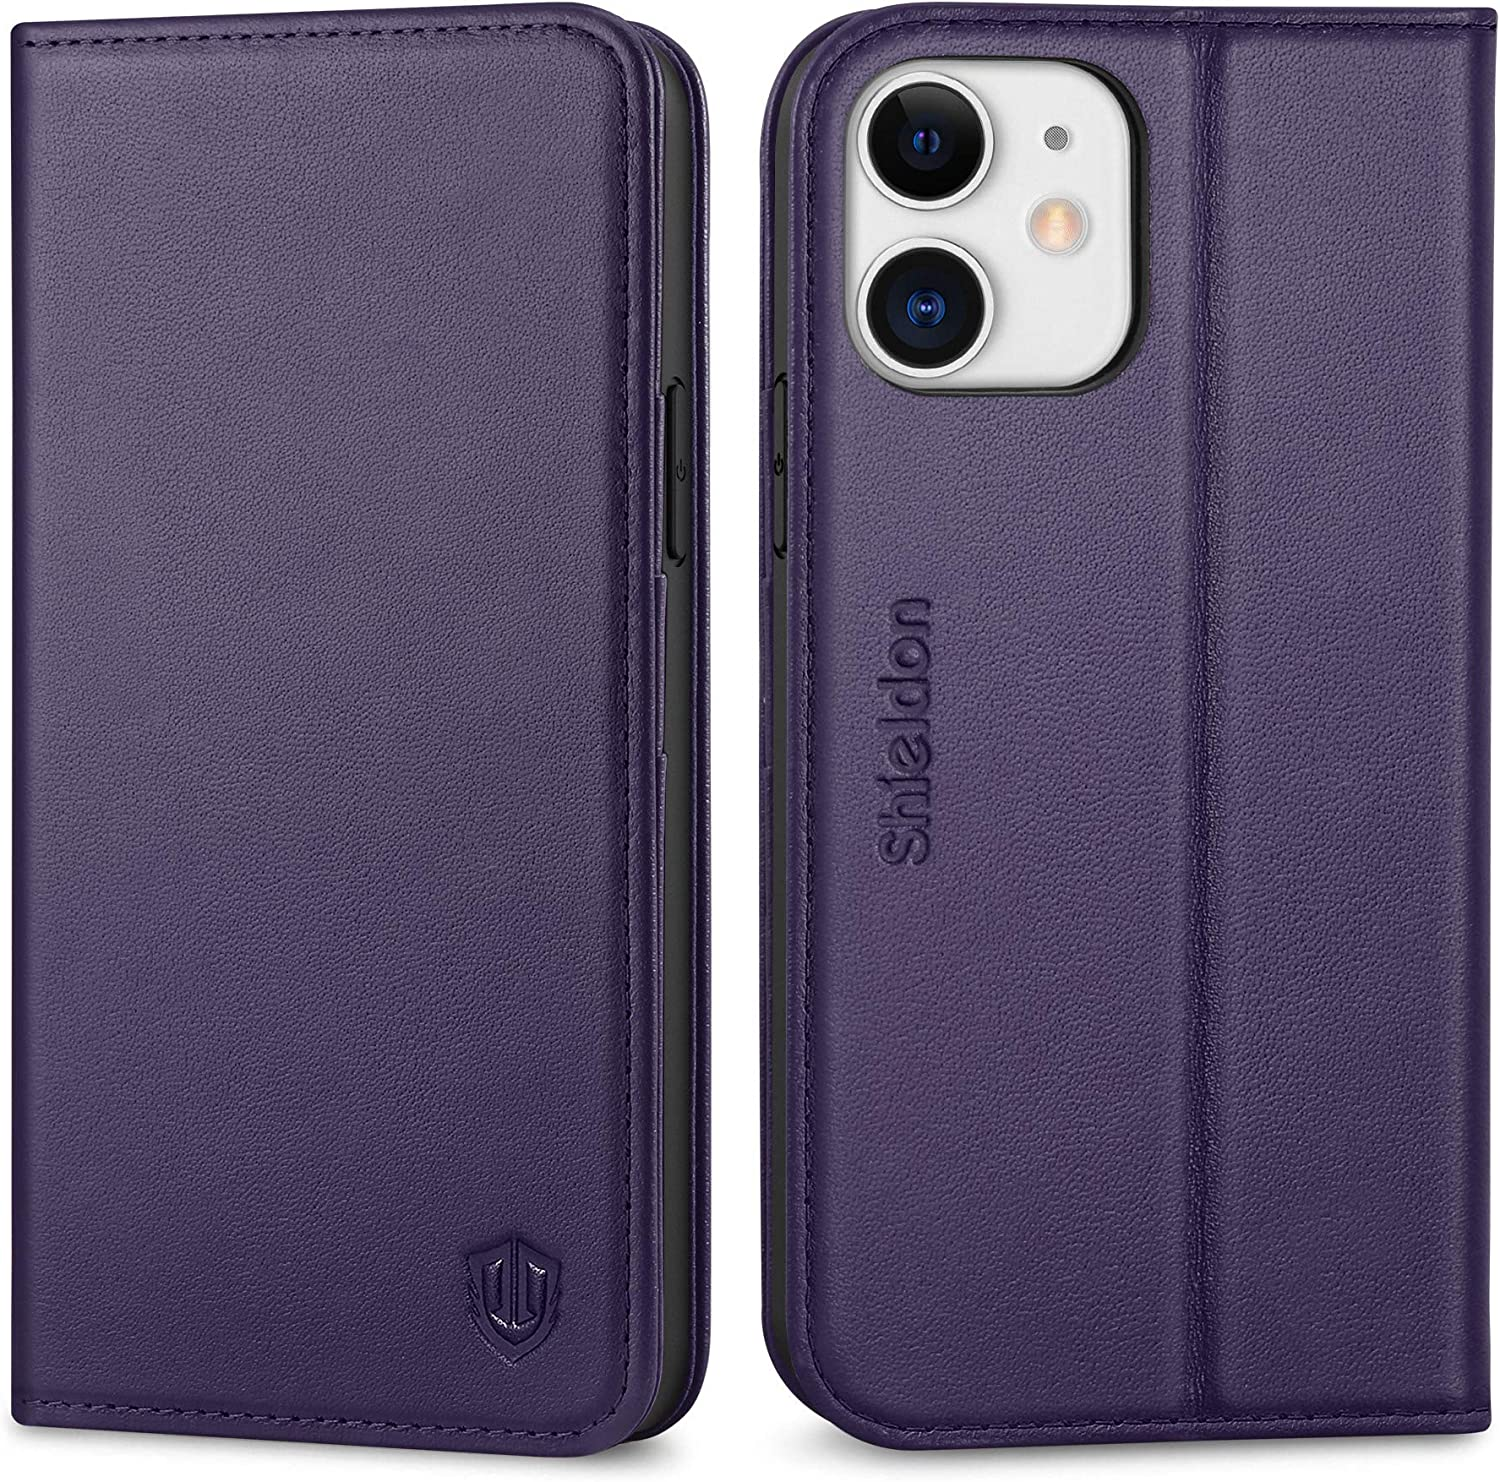 SHIELDON Case for iPhone 12/12 Pro 5G, Genuine Leather Wallet Case Magnetic Kickstand RFID Blocking Card Slots Full Protection Cover Compatible with iPhone 12 Pro 5G (6.1 Inch) - Dark Purple